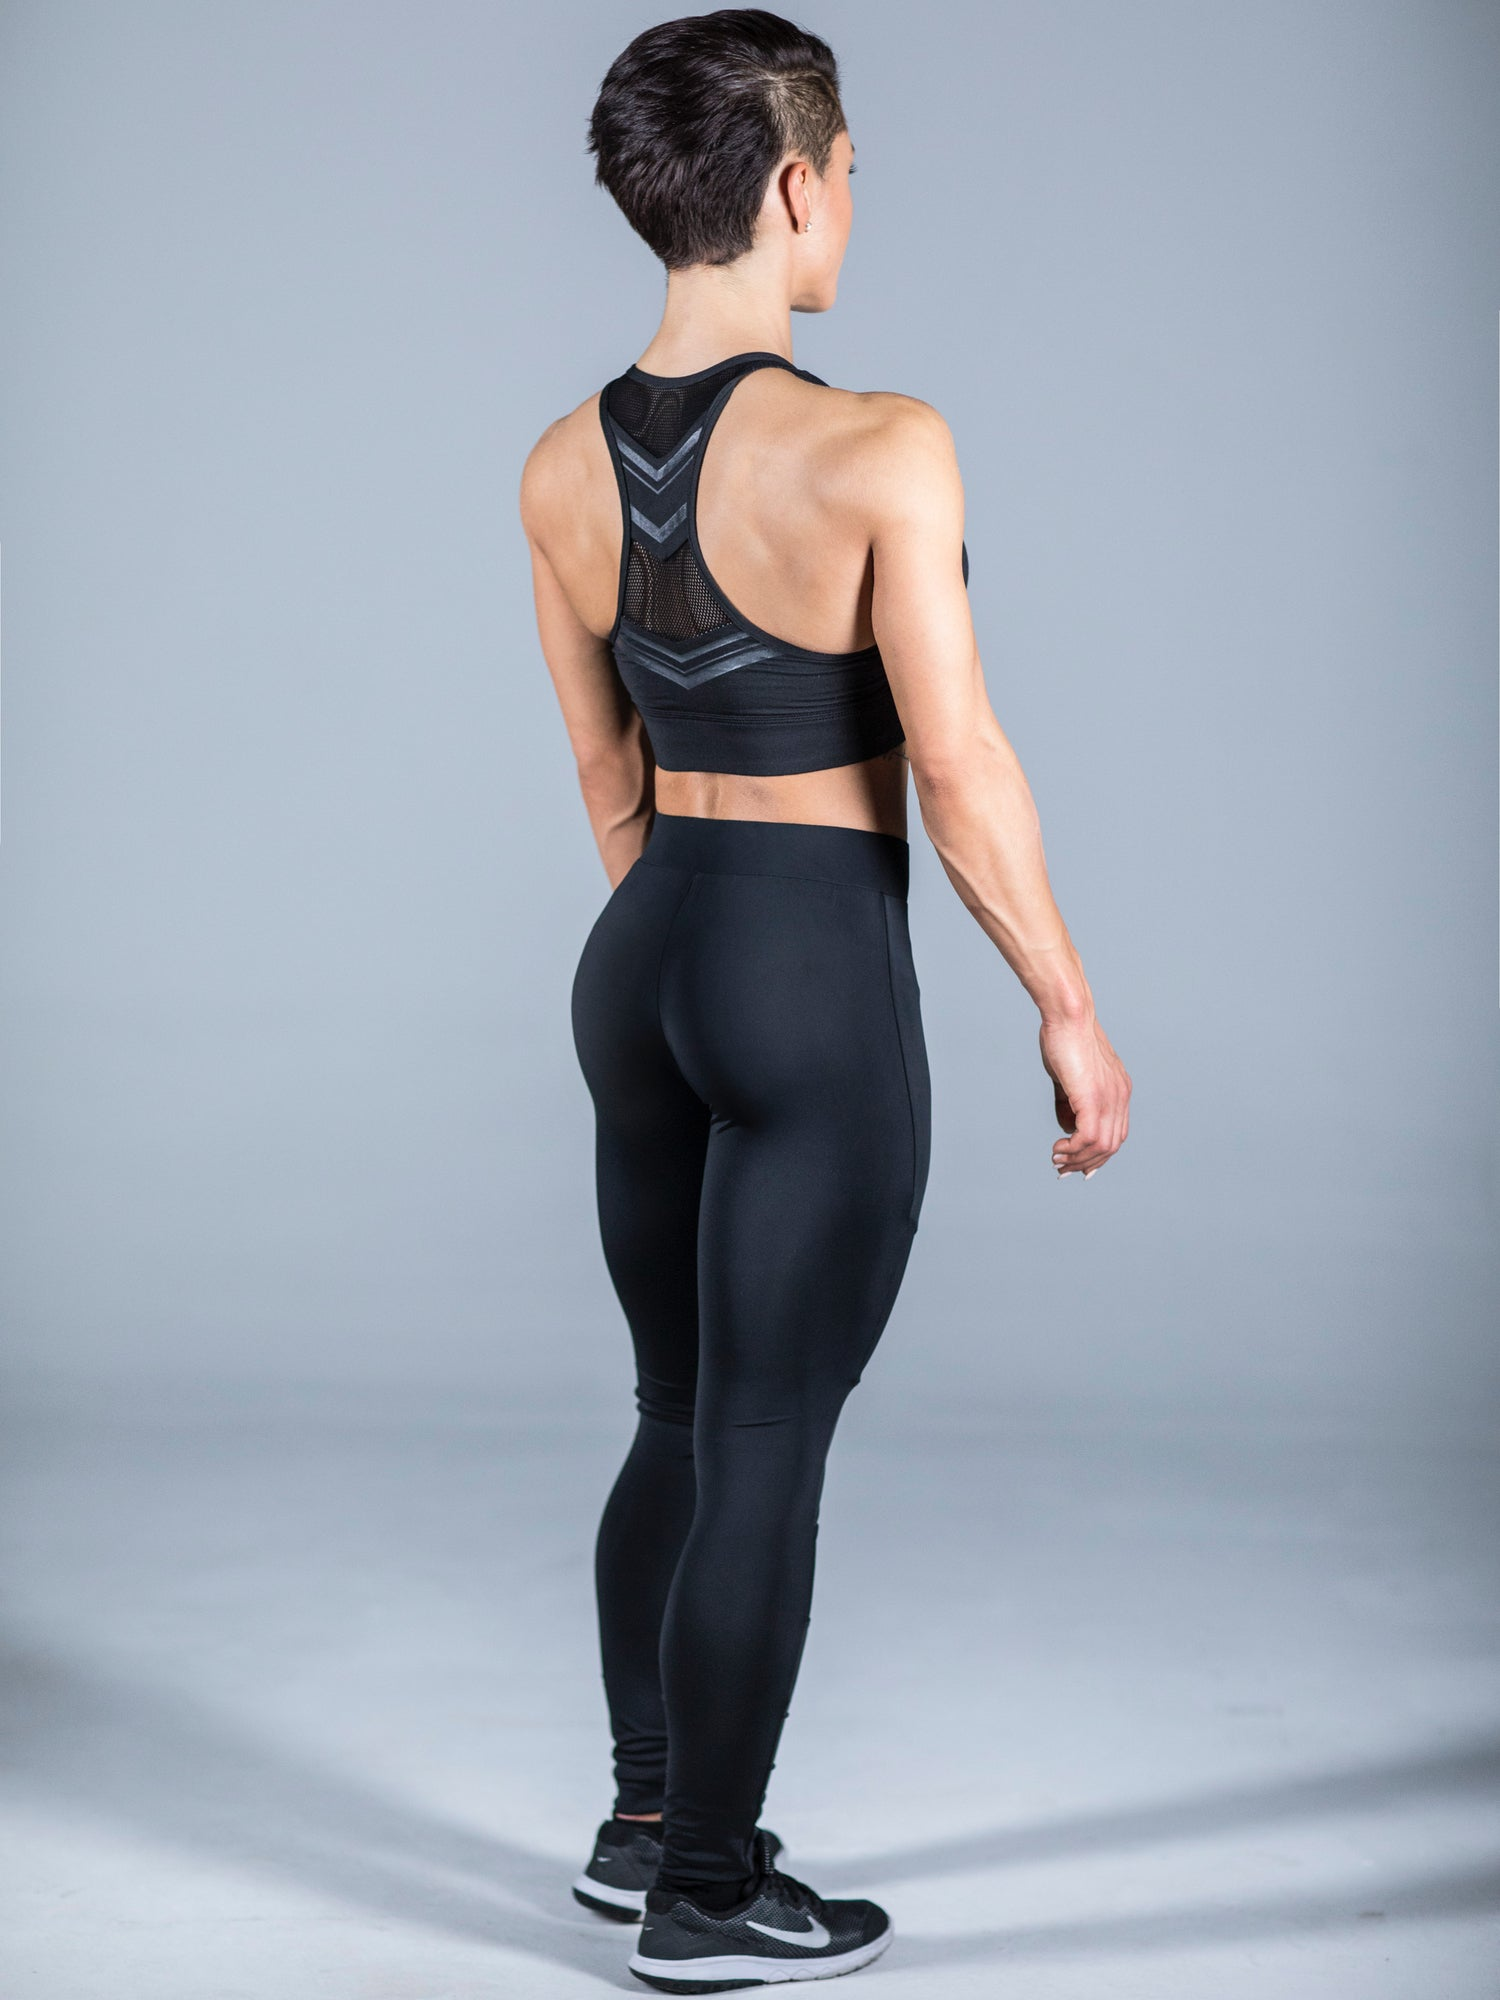 HGC Diamond Leggings - Black